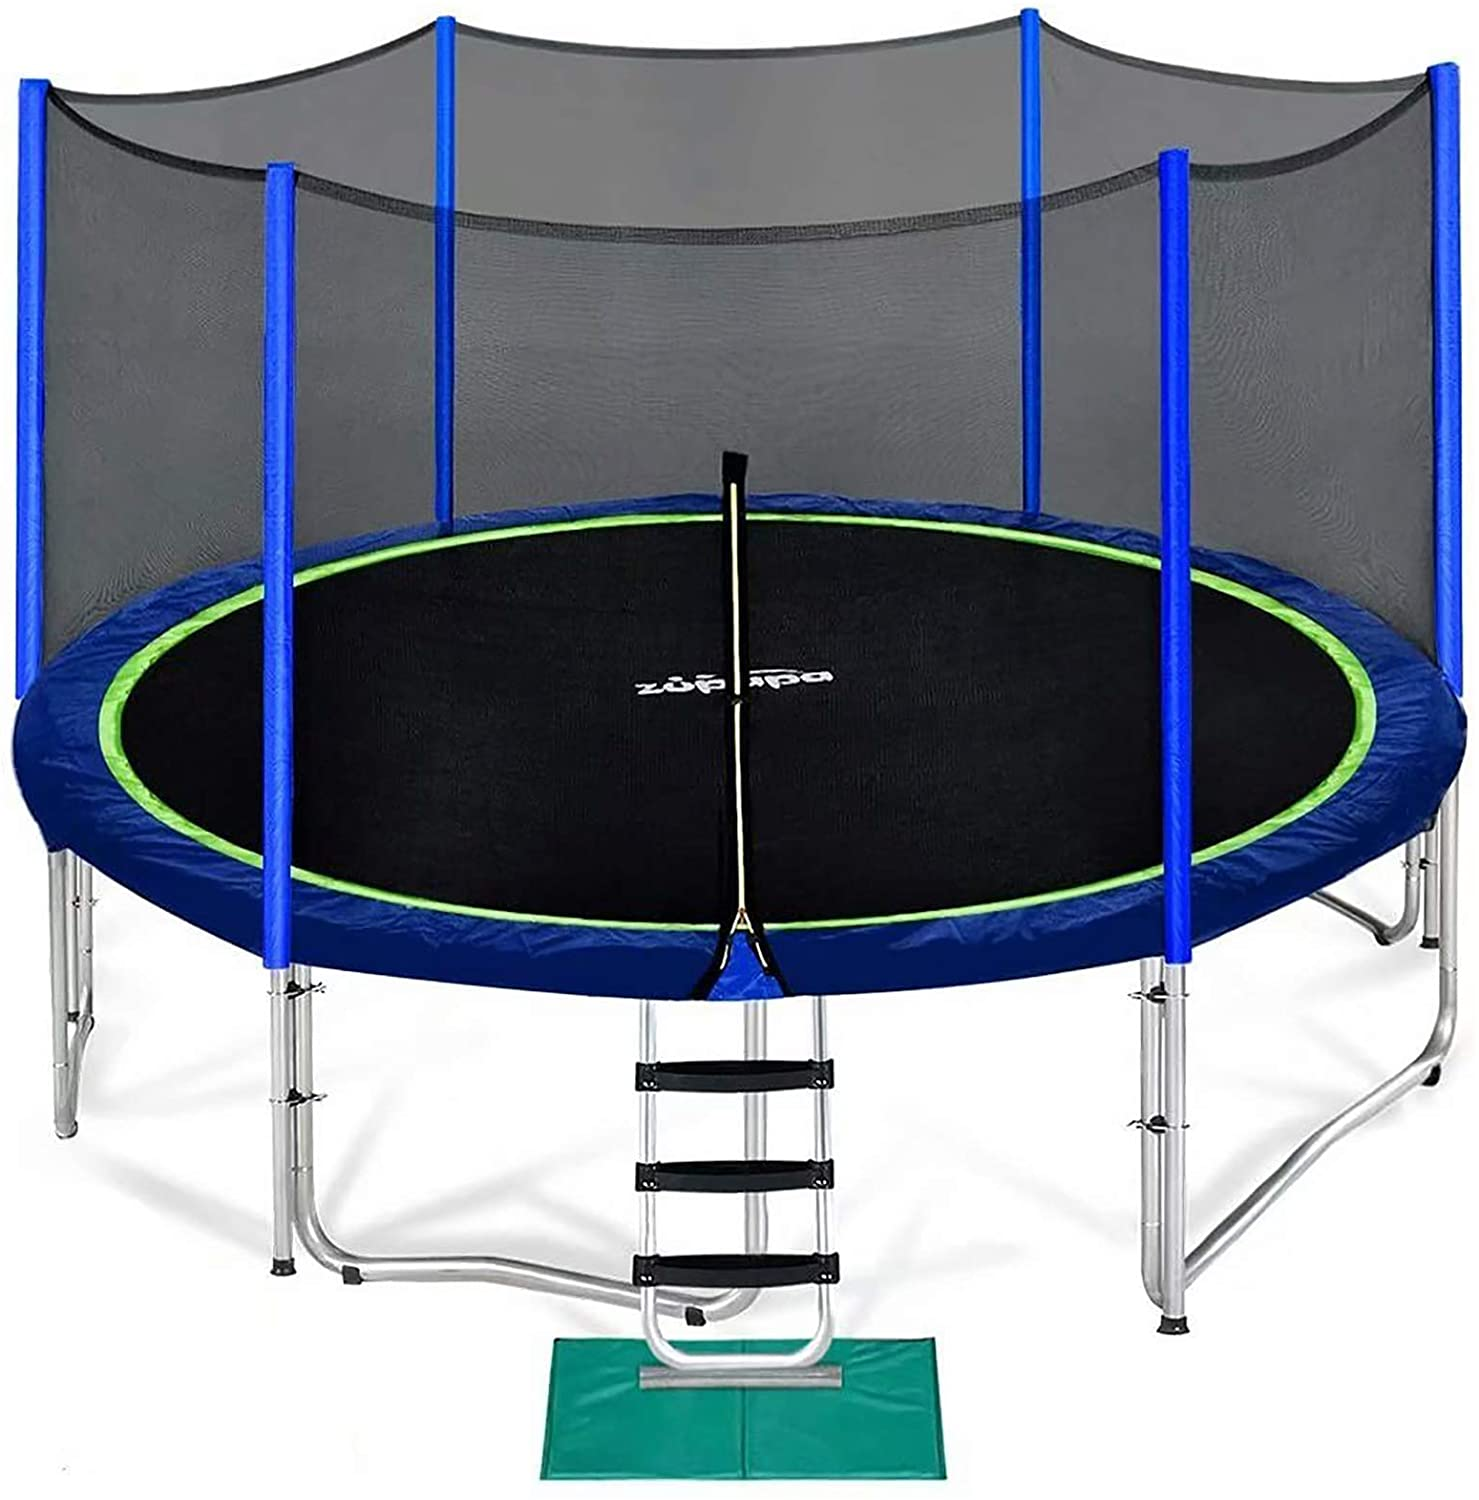 Zupapa 14ft Trampoline with Enclosure Net, Ladder, and Safety Jumping Mat